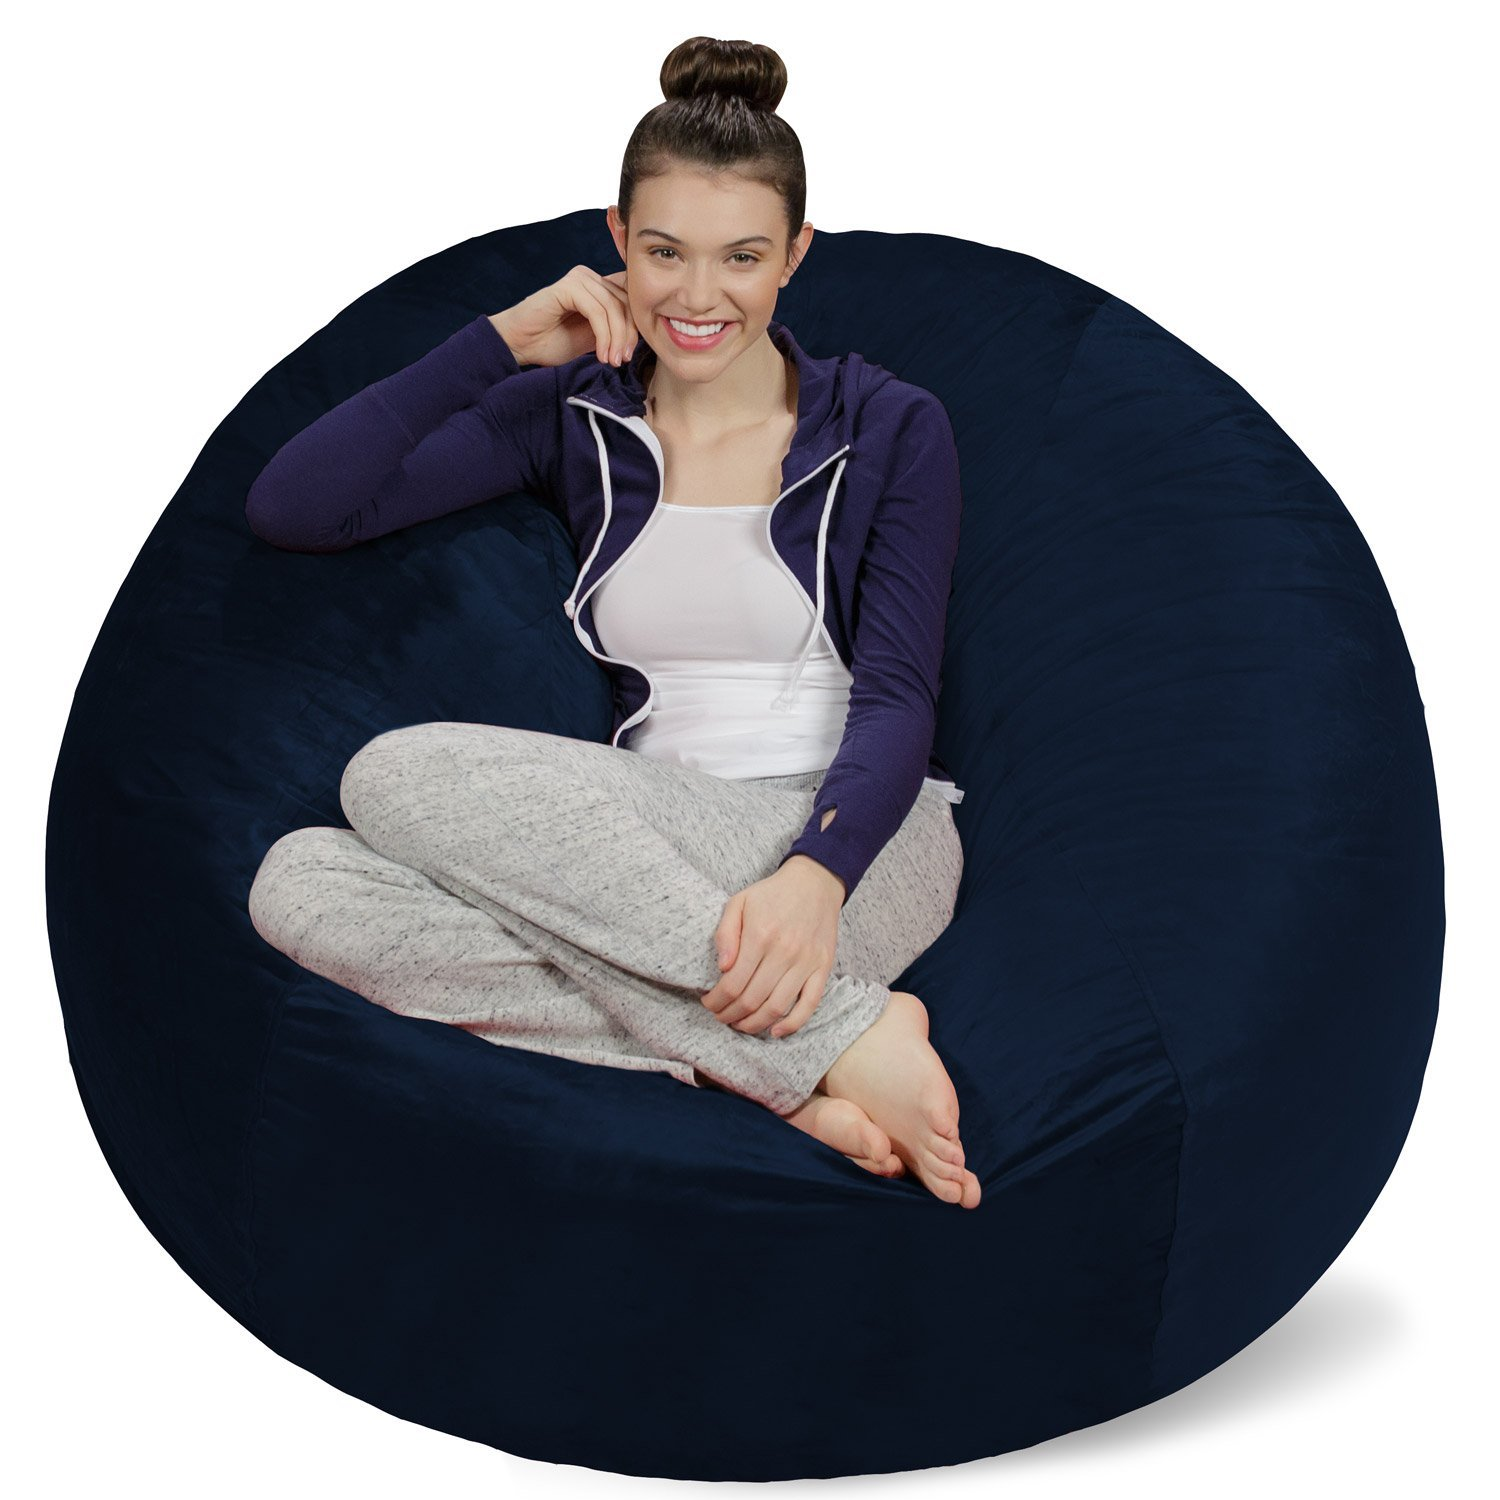 Sofa Sack - Plush Ultra Soft Bean Bags Chairs for Kids, Teens, Adults - Memory Foam Beanless Bag Chair with Microsuede Cover - Foam Filled Furniture for Dorm Room - Navy 5' by Sofa Sack - Bean Bags